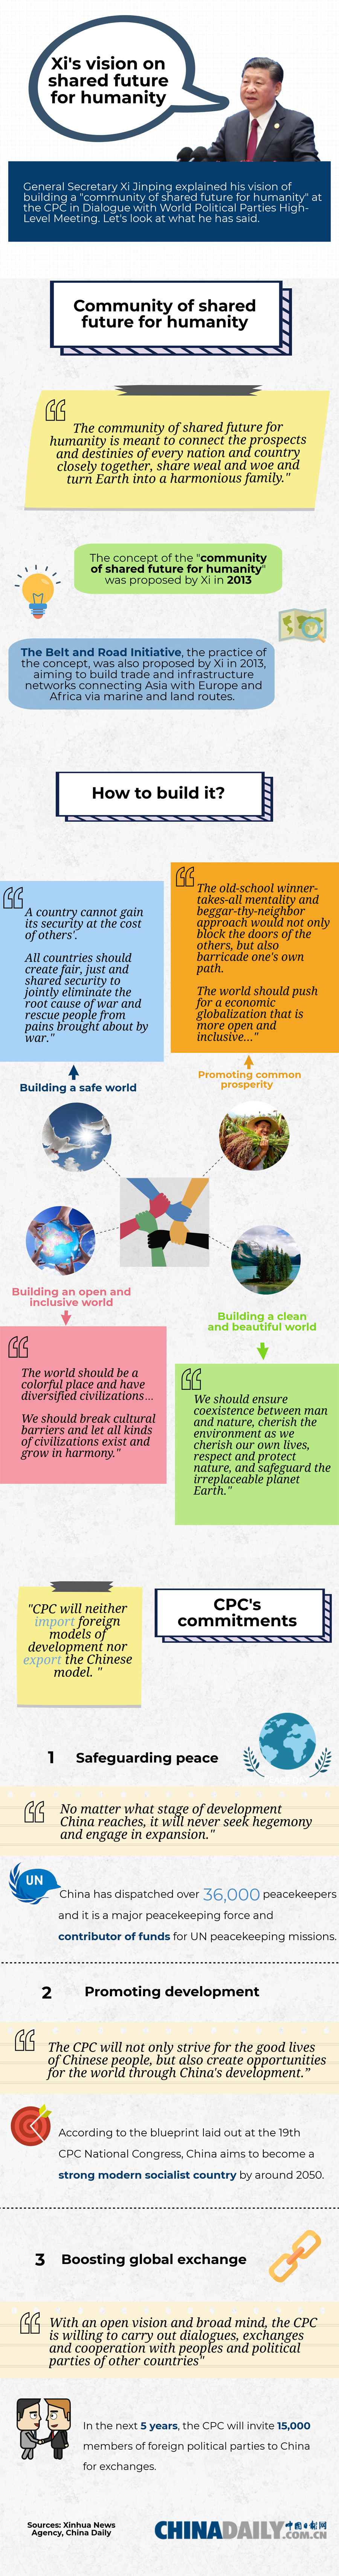 Xi's vision on shared future for humanity